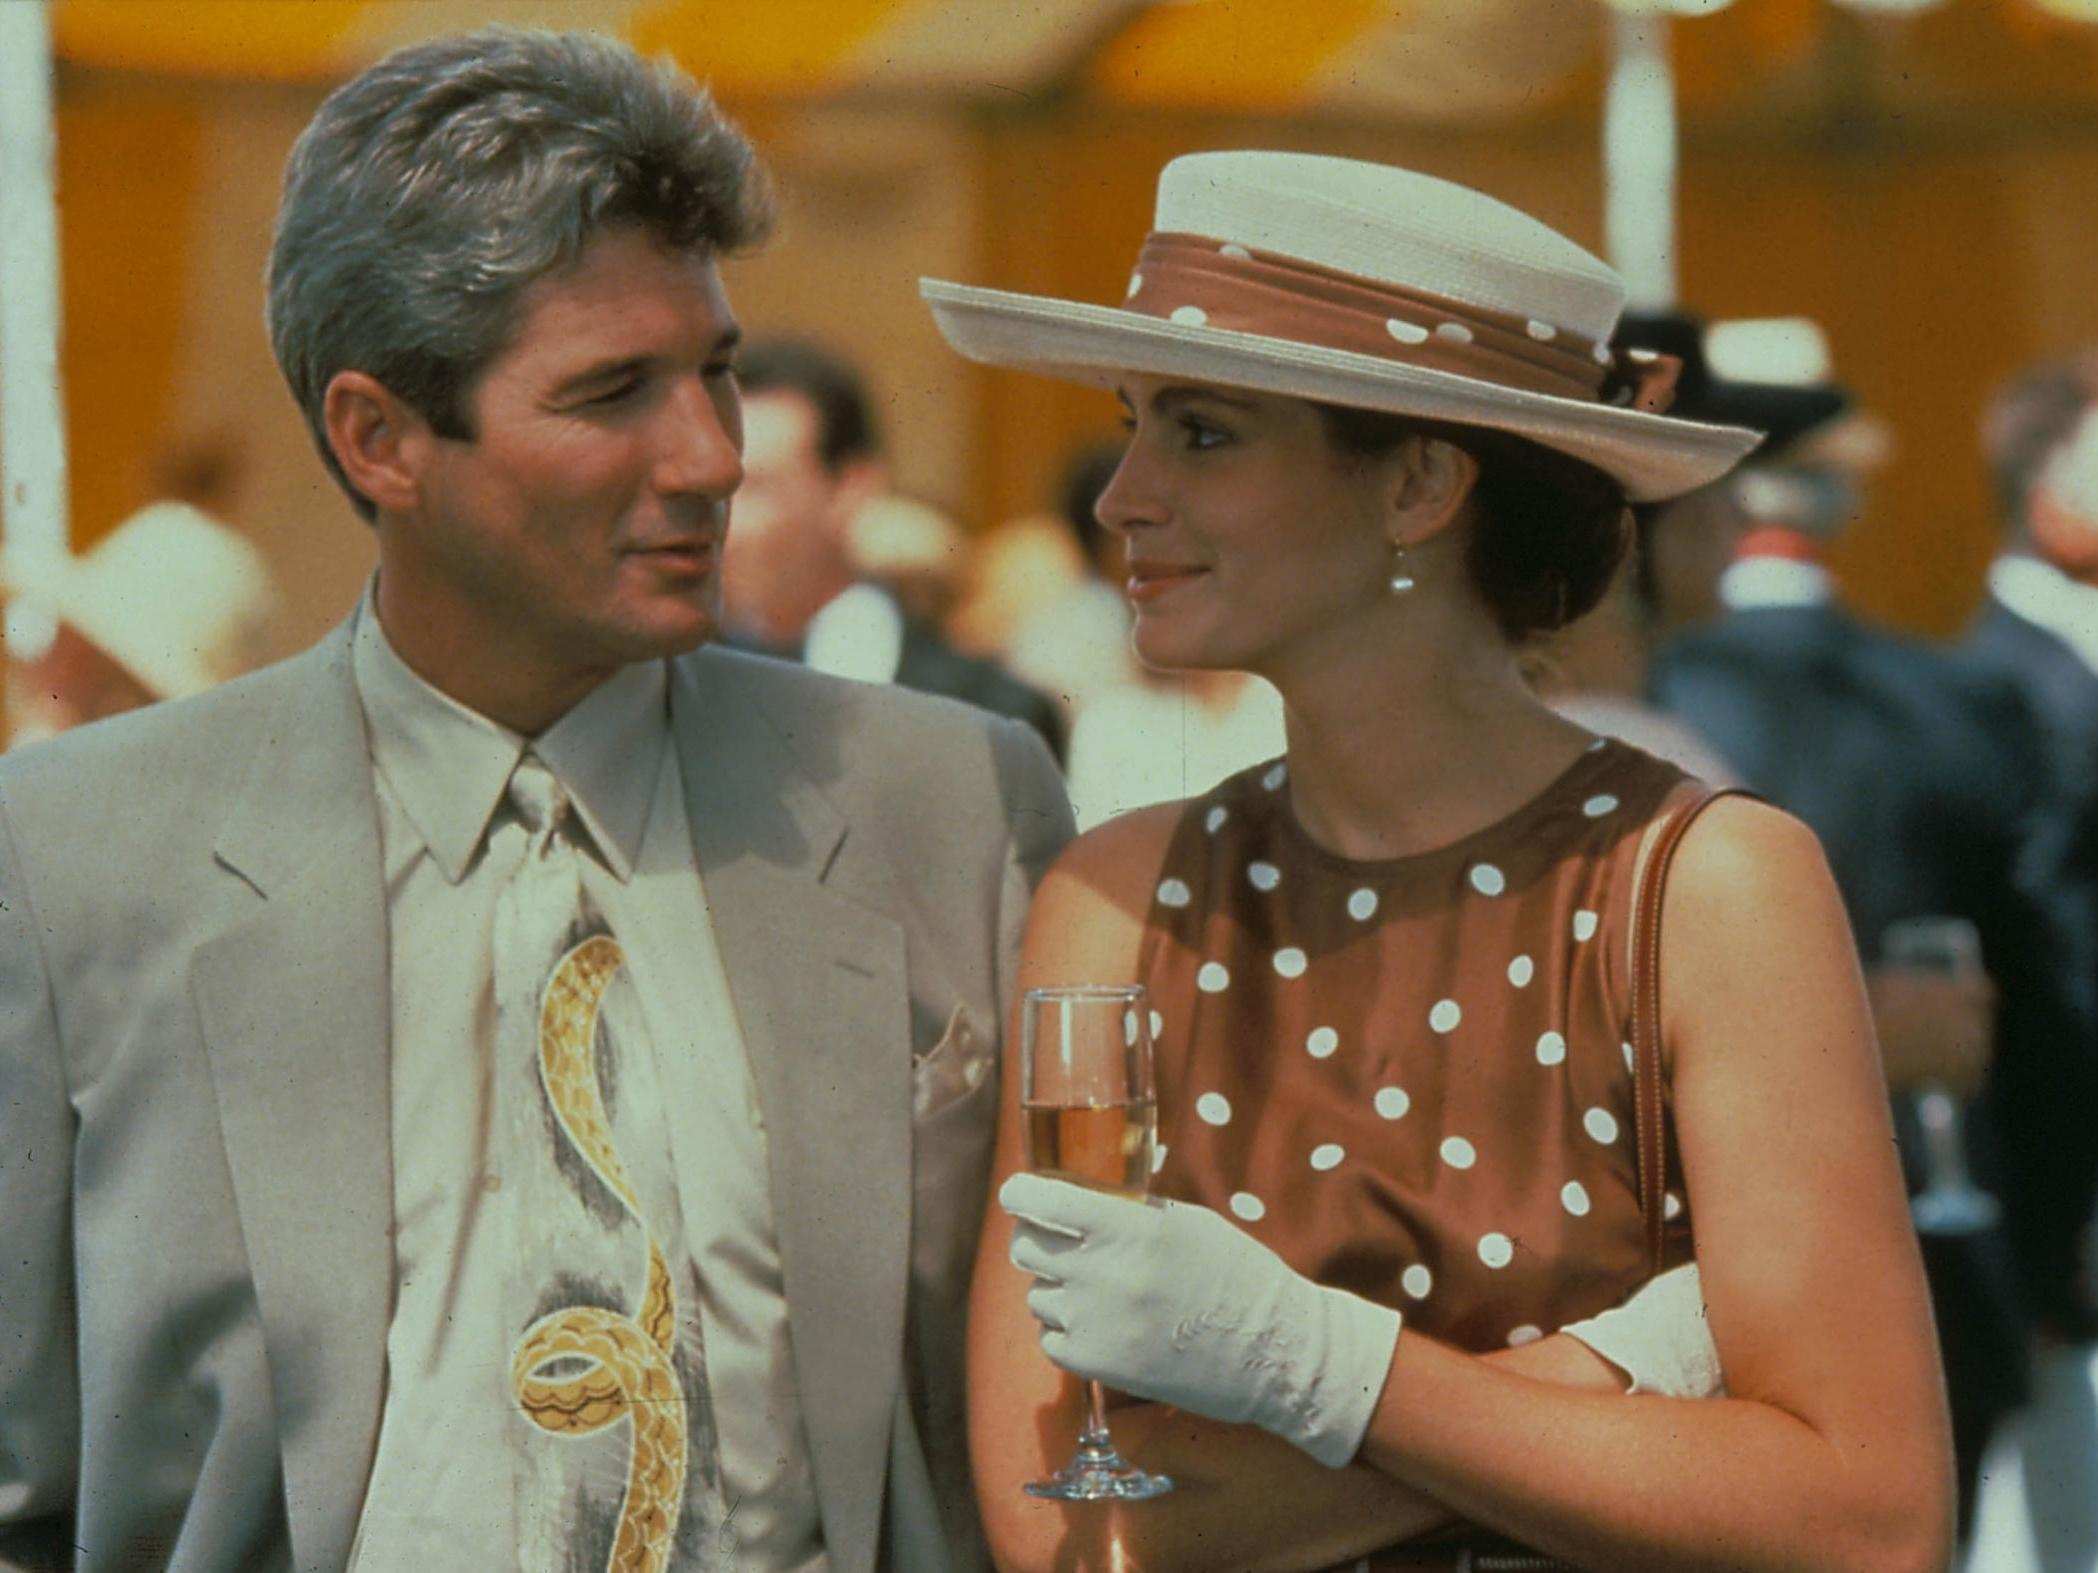 Stylish films to inspire your summer wardrobe boost, from Pretty Woman to The Notebook